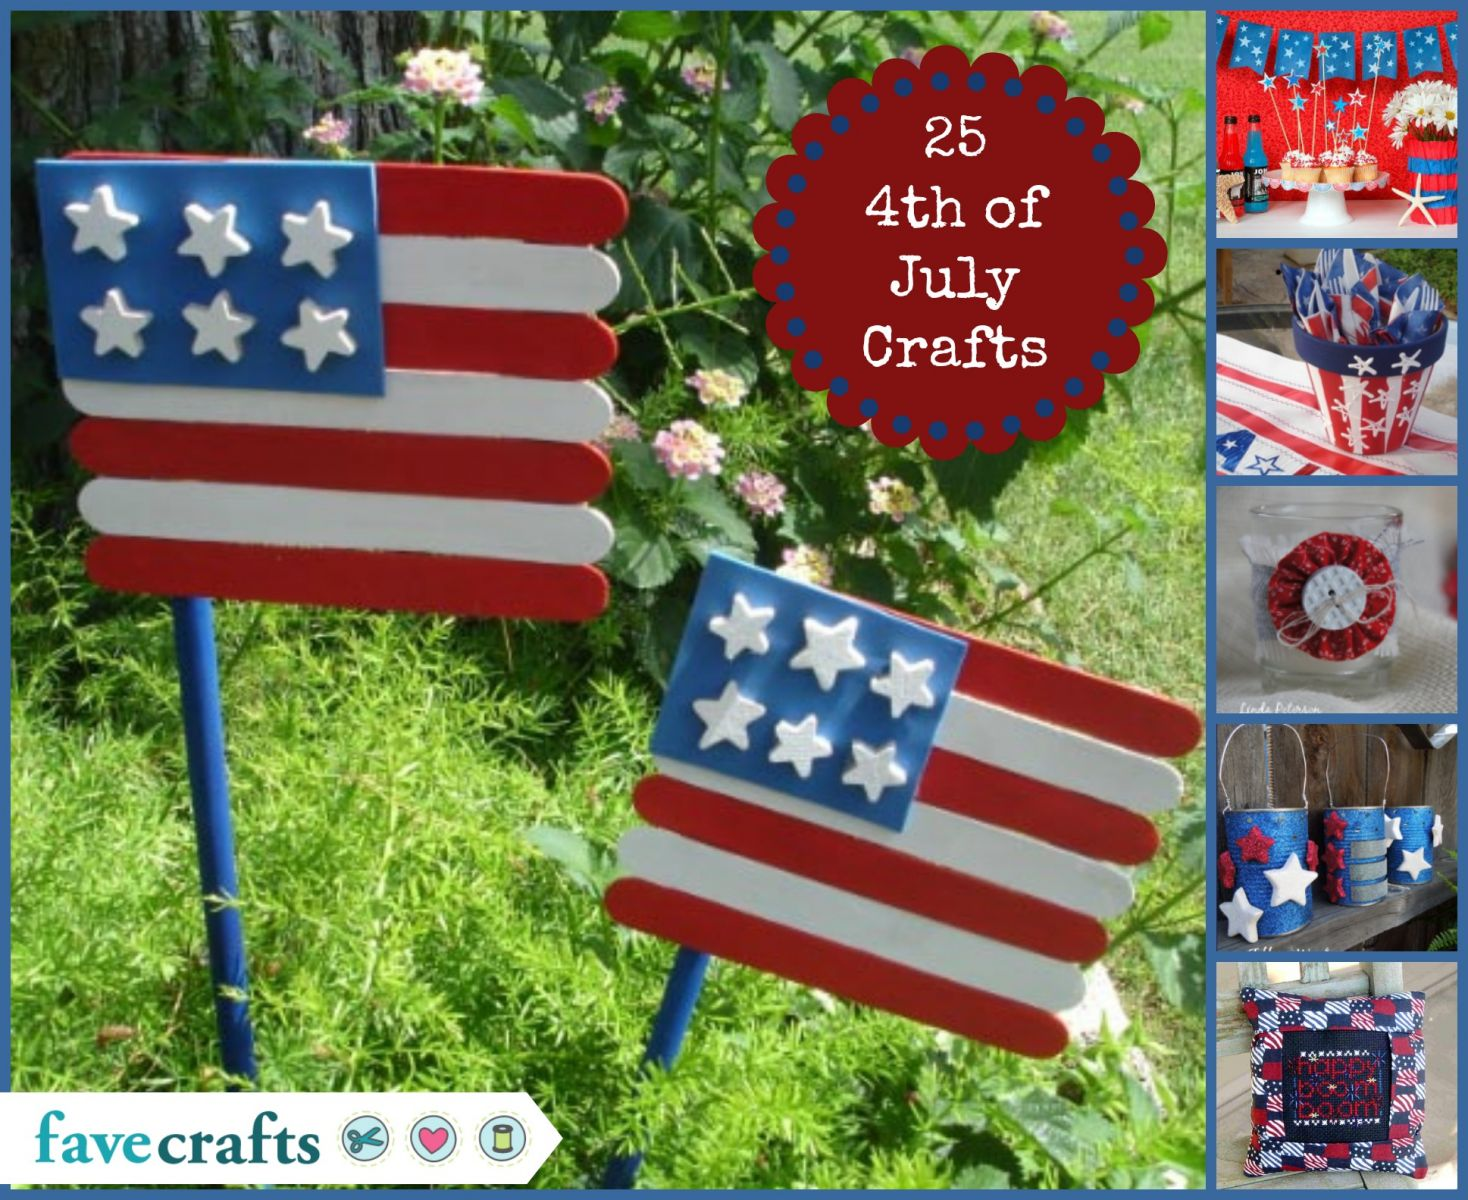 25 4th of July Crafts